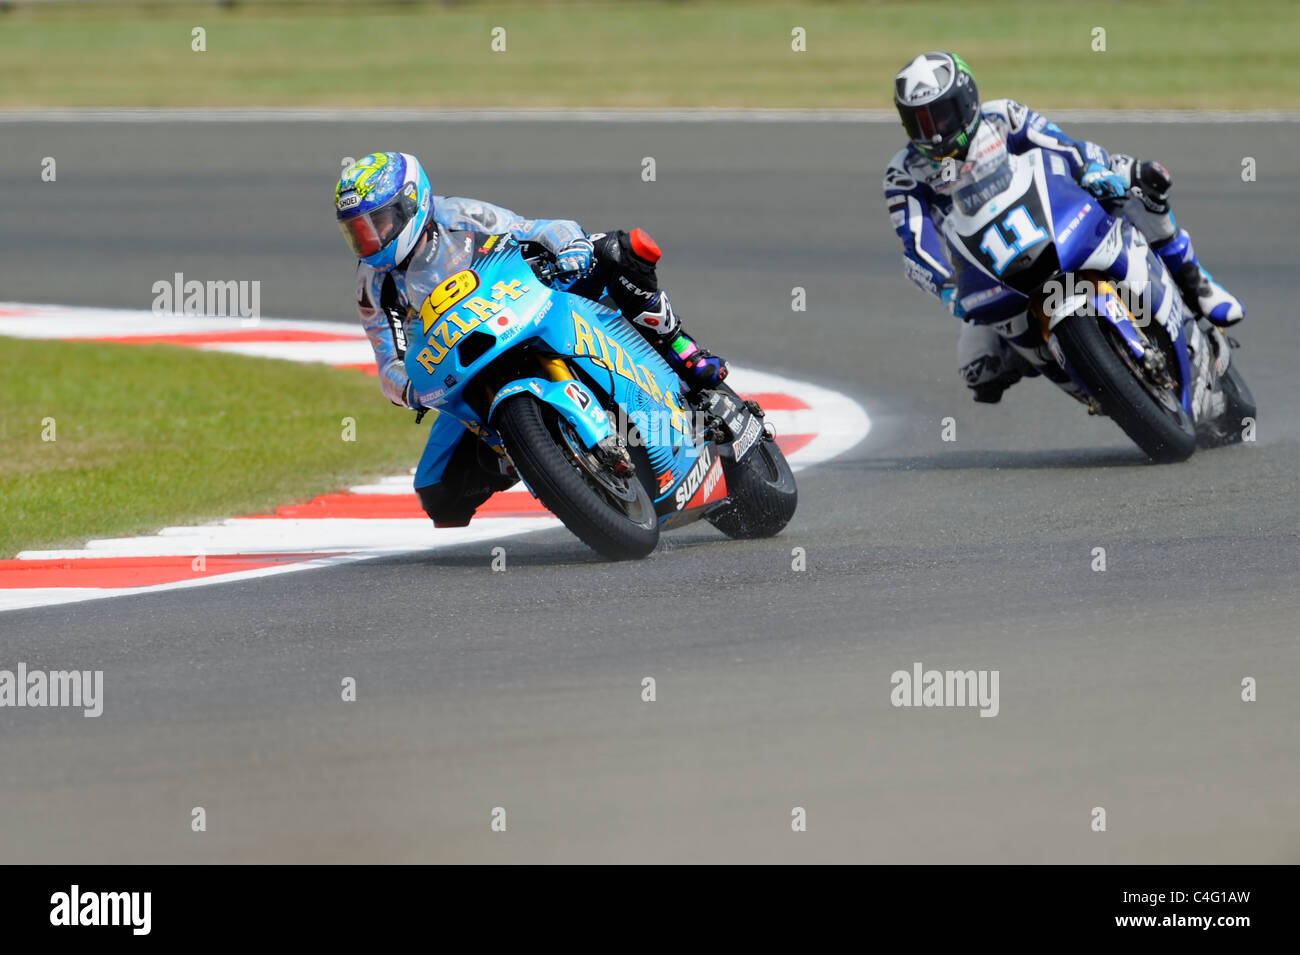 alvaro-bautista-and-ben-spies-in-wet-conditions-moto-gp-2011-C4G1AW.jpg